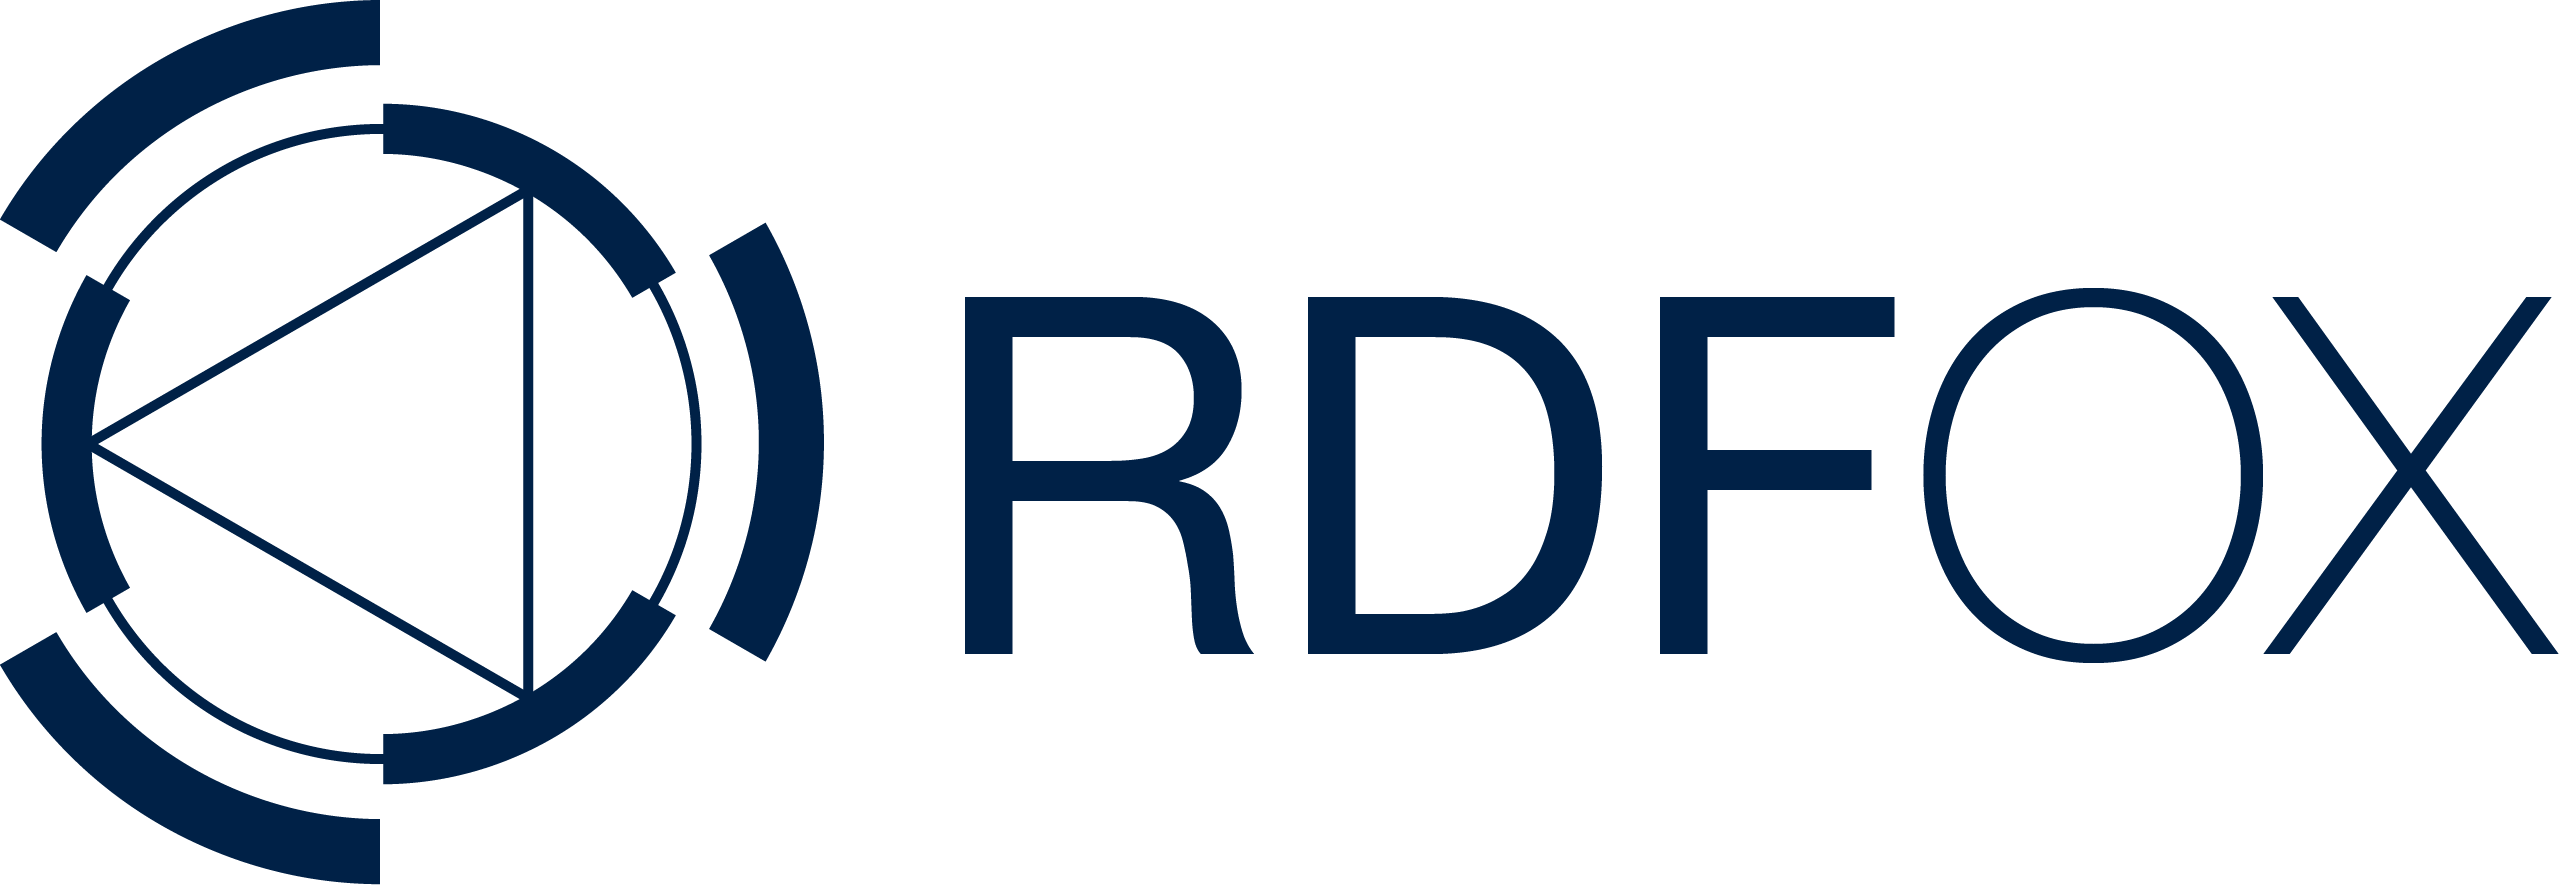 RDFox, the first market ready high-performance in-memory knowledge graph and semantic reasoner. Designed at the University of Oxford for performance and scalability.